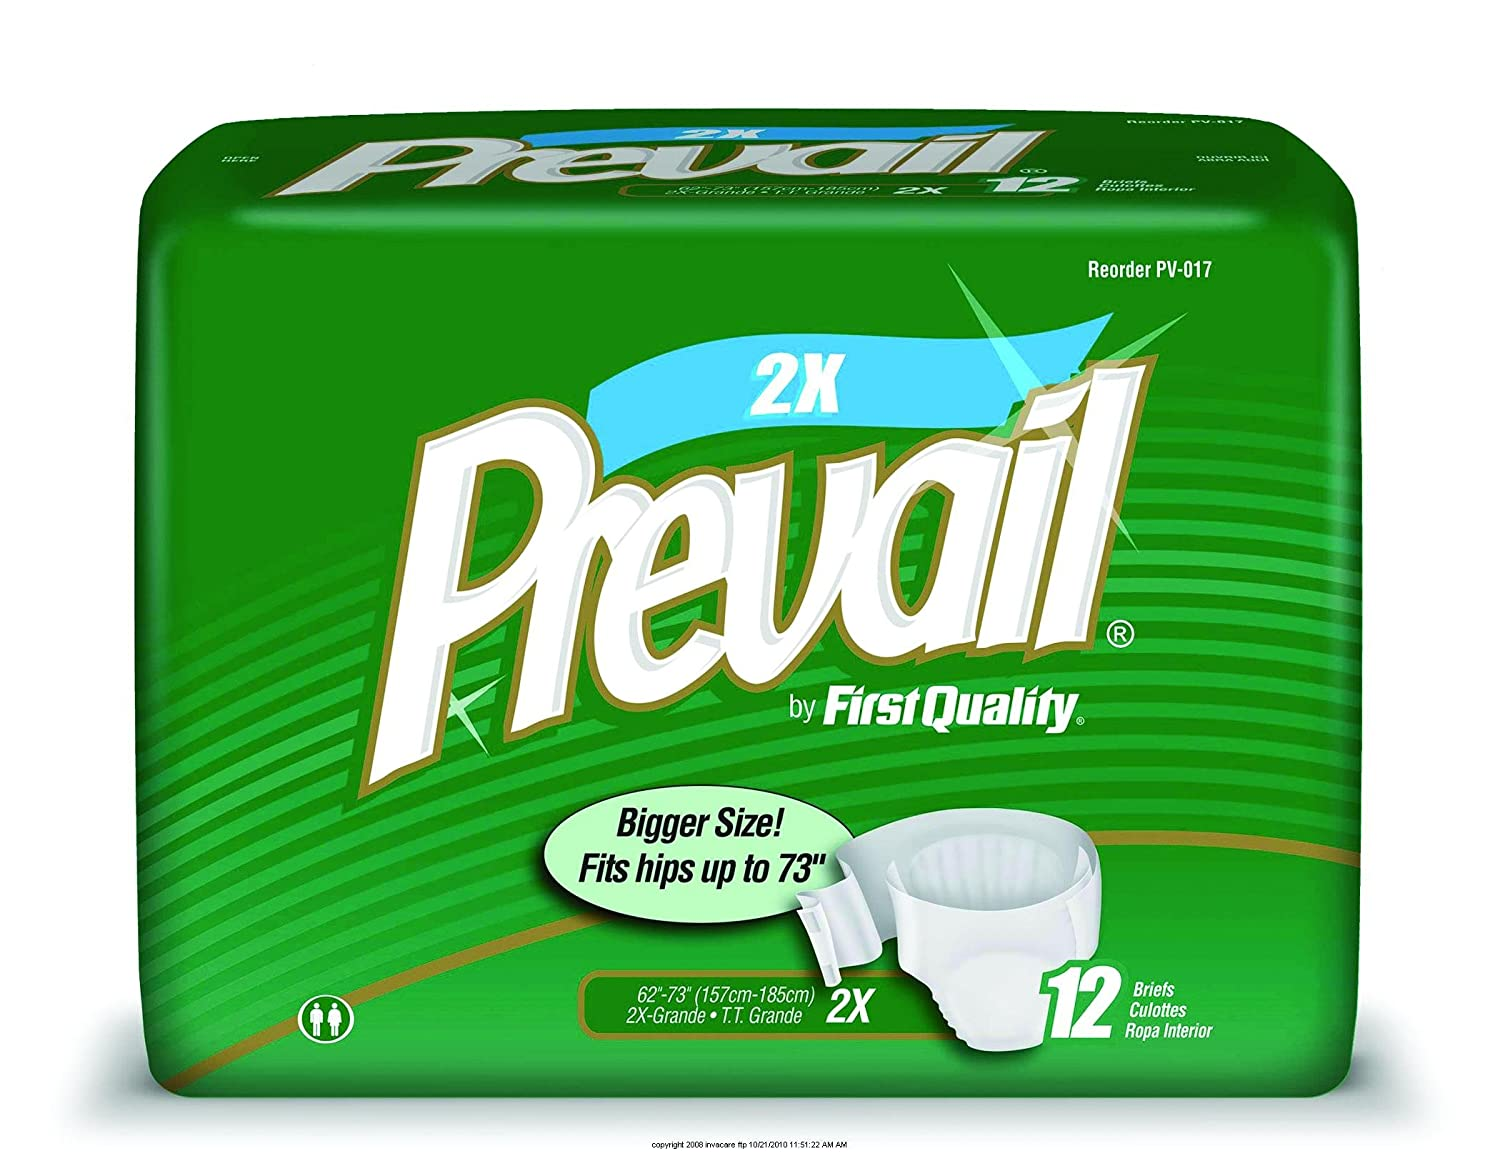 Amazon.com: Prevail Specialty Size Briefs, Prevail Youth Brief, (1 CASE, 96 EACH): Health & Personal Care